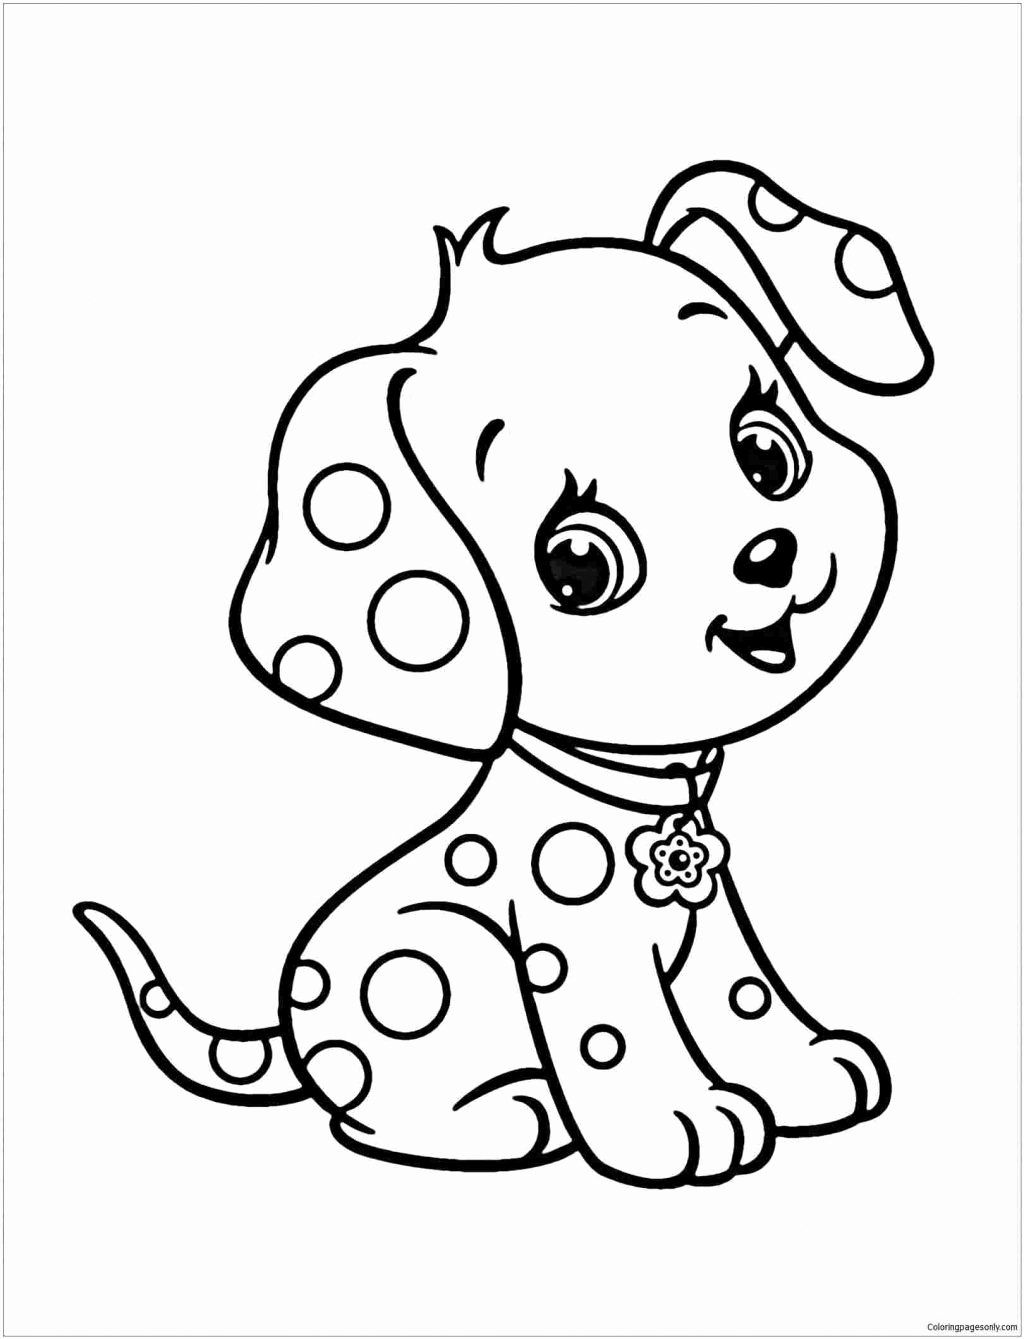 Dog Coloring Book For Adults Luxury Coloring Books Printable Dog Coloring Pages Motorcycle Puppy Coloring Pages Dog Coloring Book Unicorn Coloring Pages